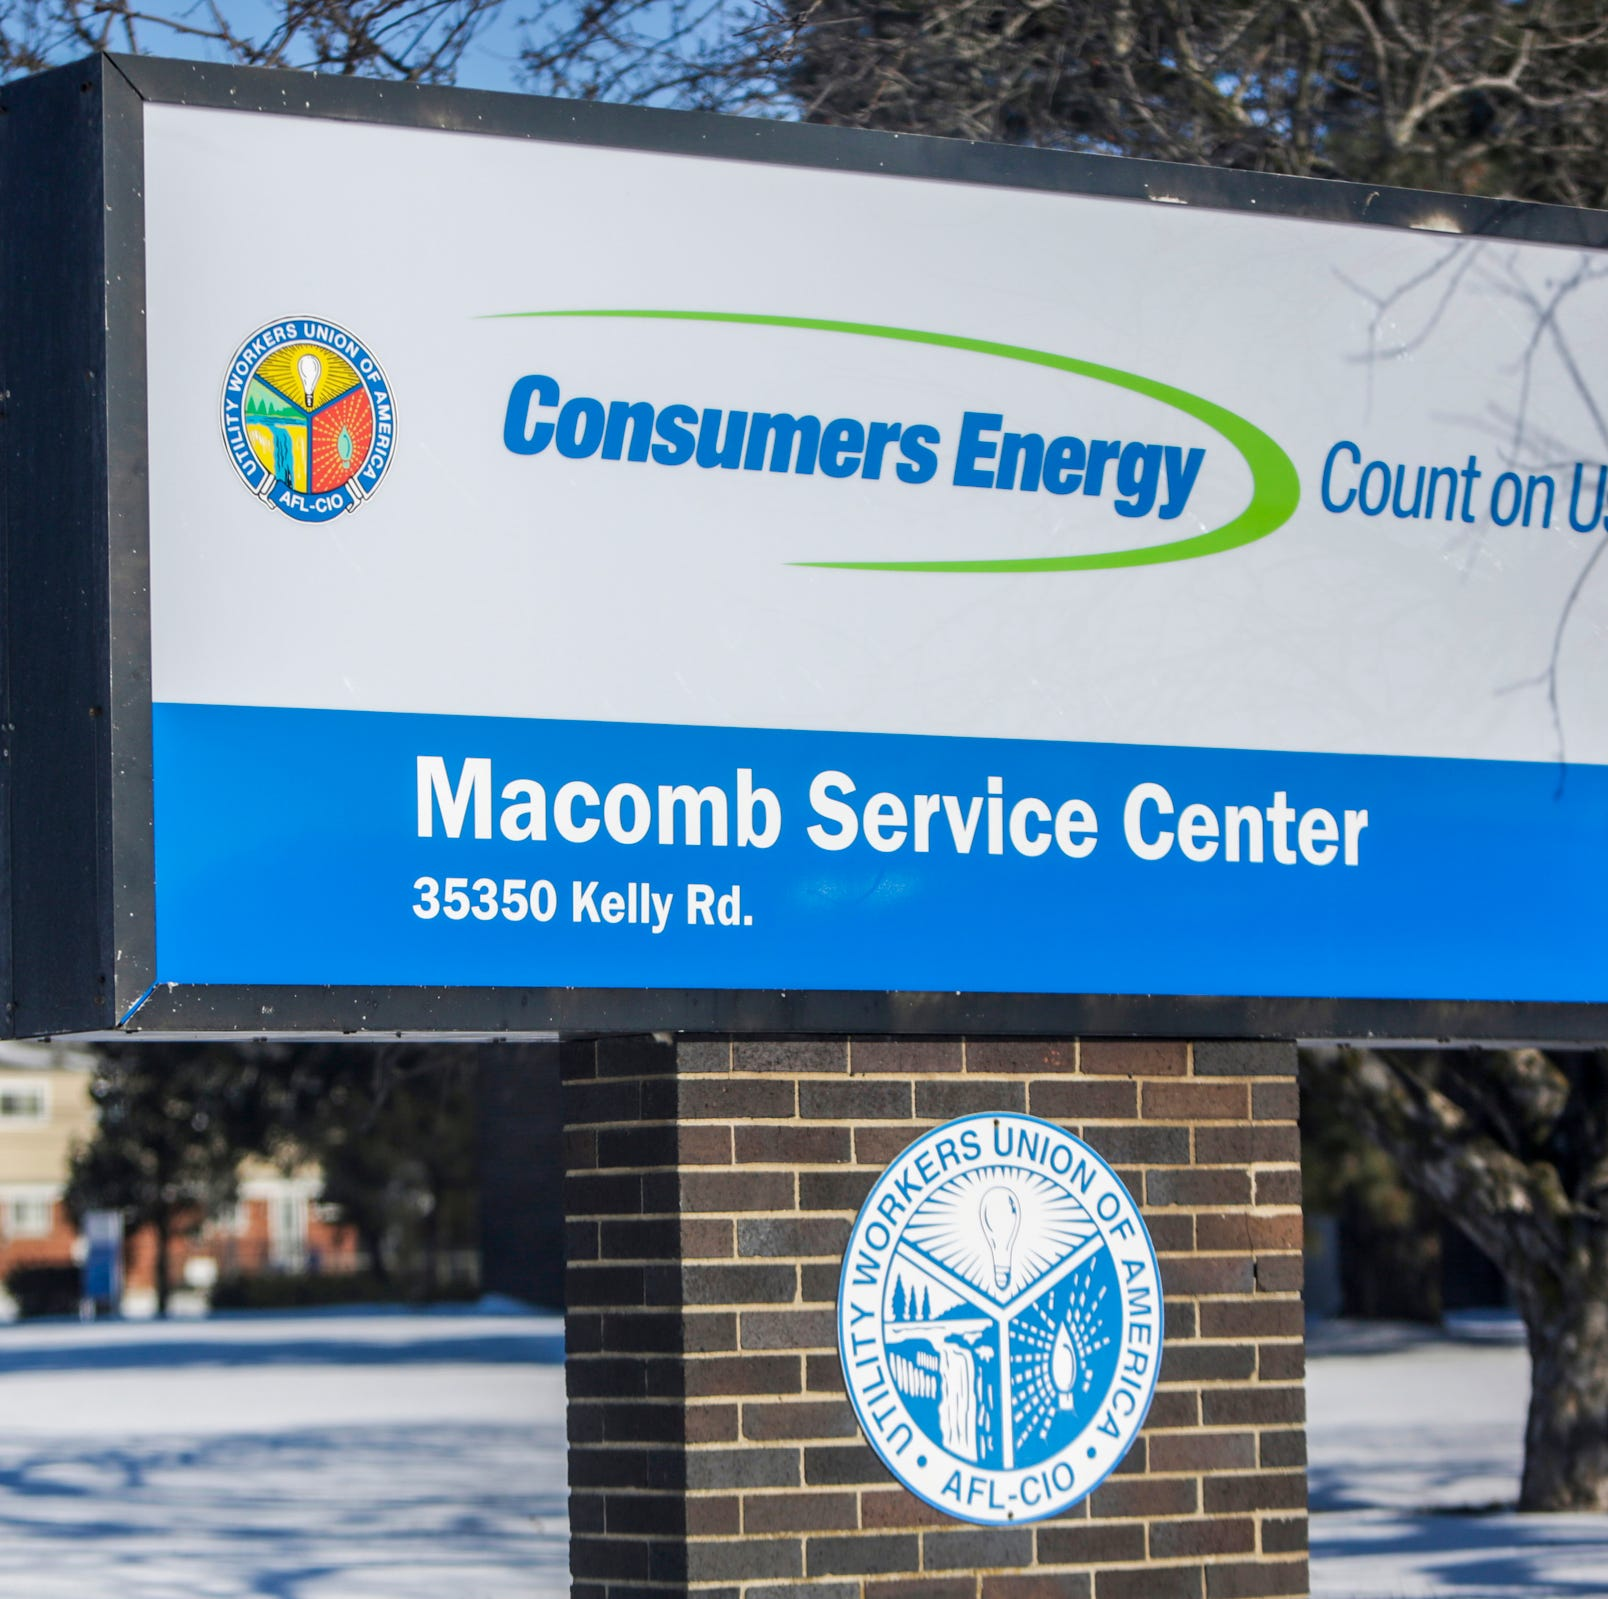 The service center for Consumers Energy in Clinton Twp. on Thursday, Jan. 31, 2019. Consumers Energy sent out a text alert asking the public to turn their thermostats to 65 degrees due to strains on their natural gas resources.